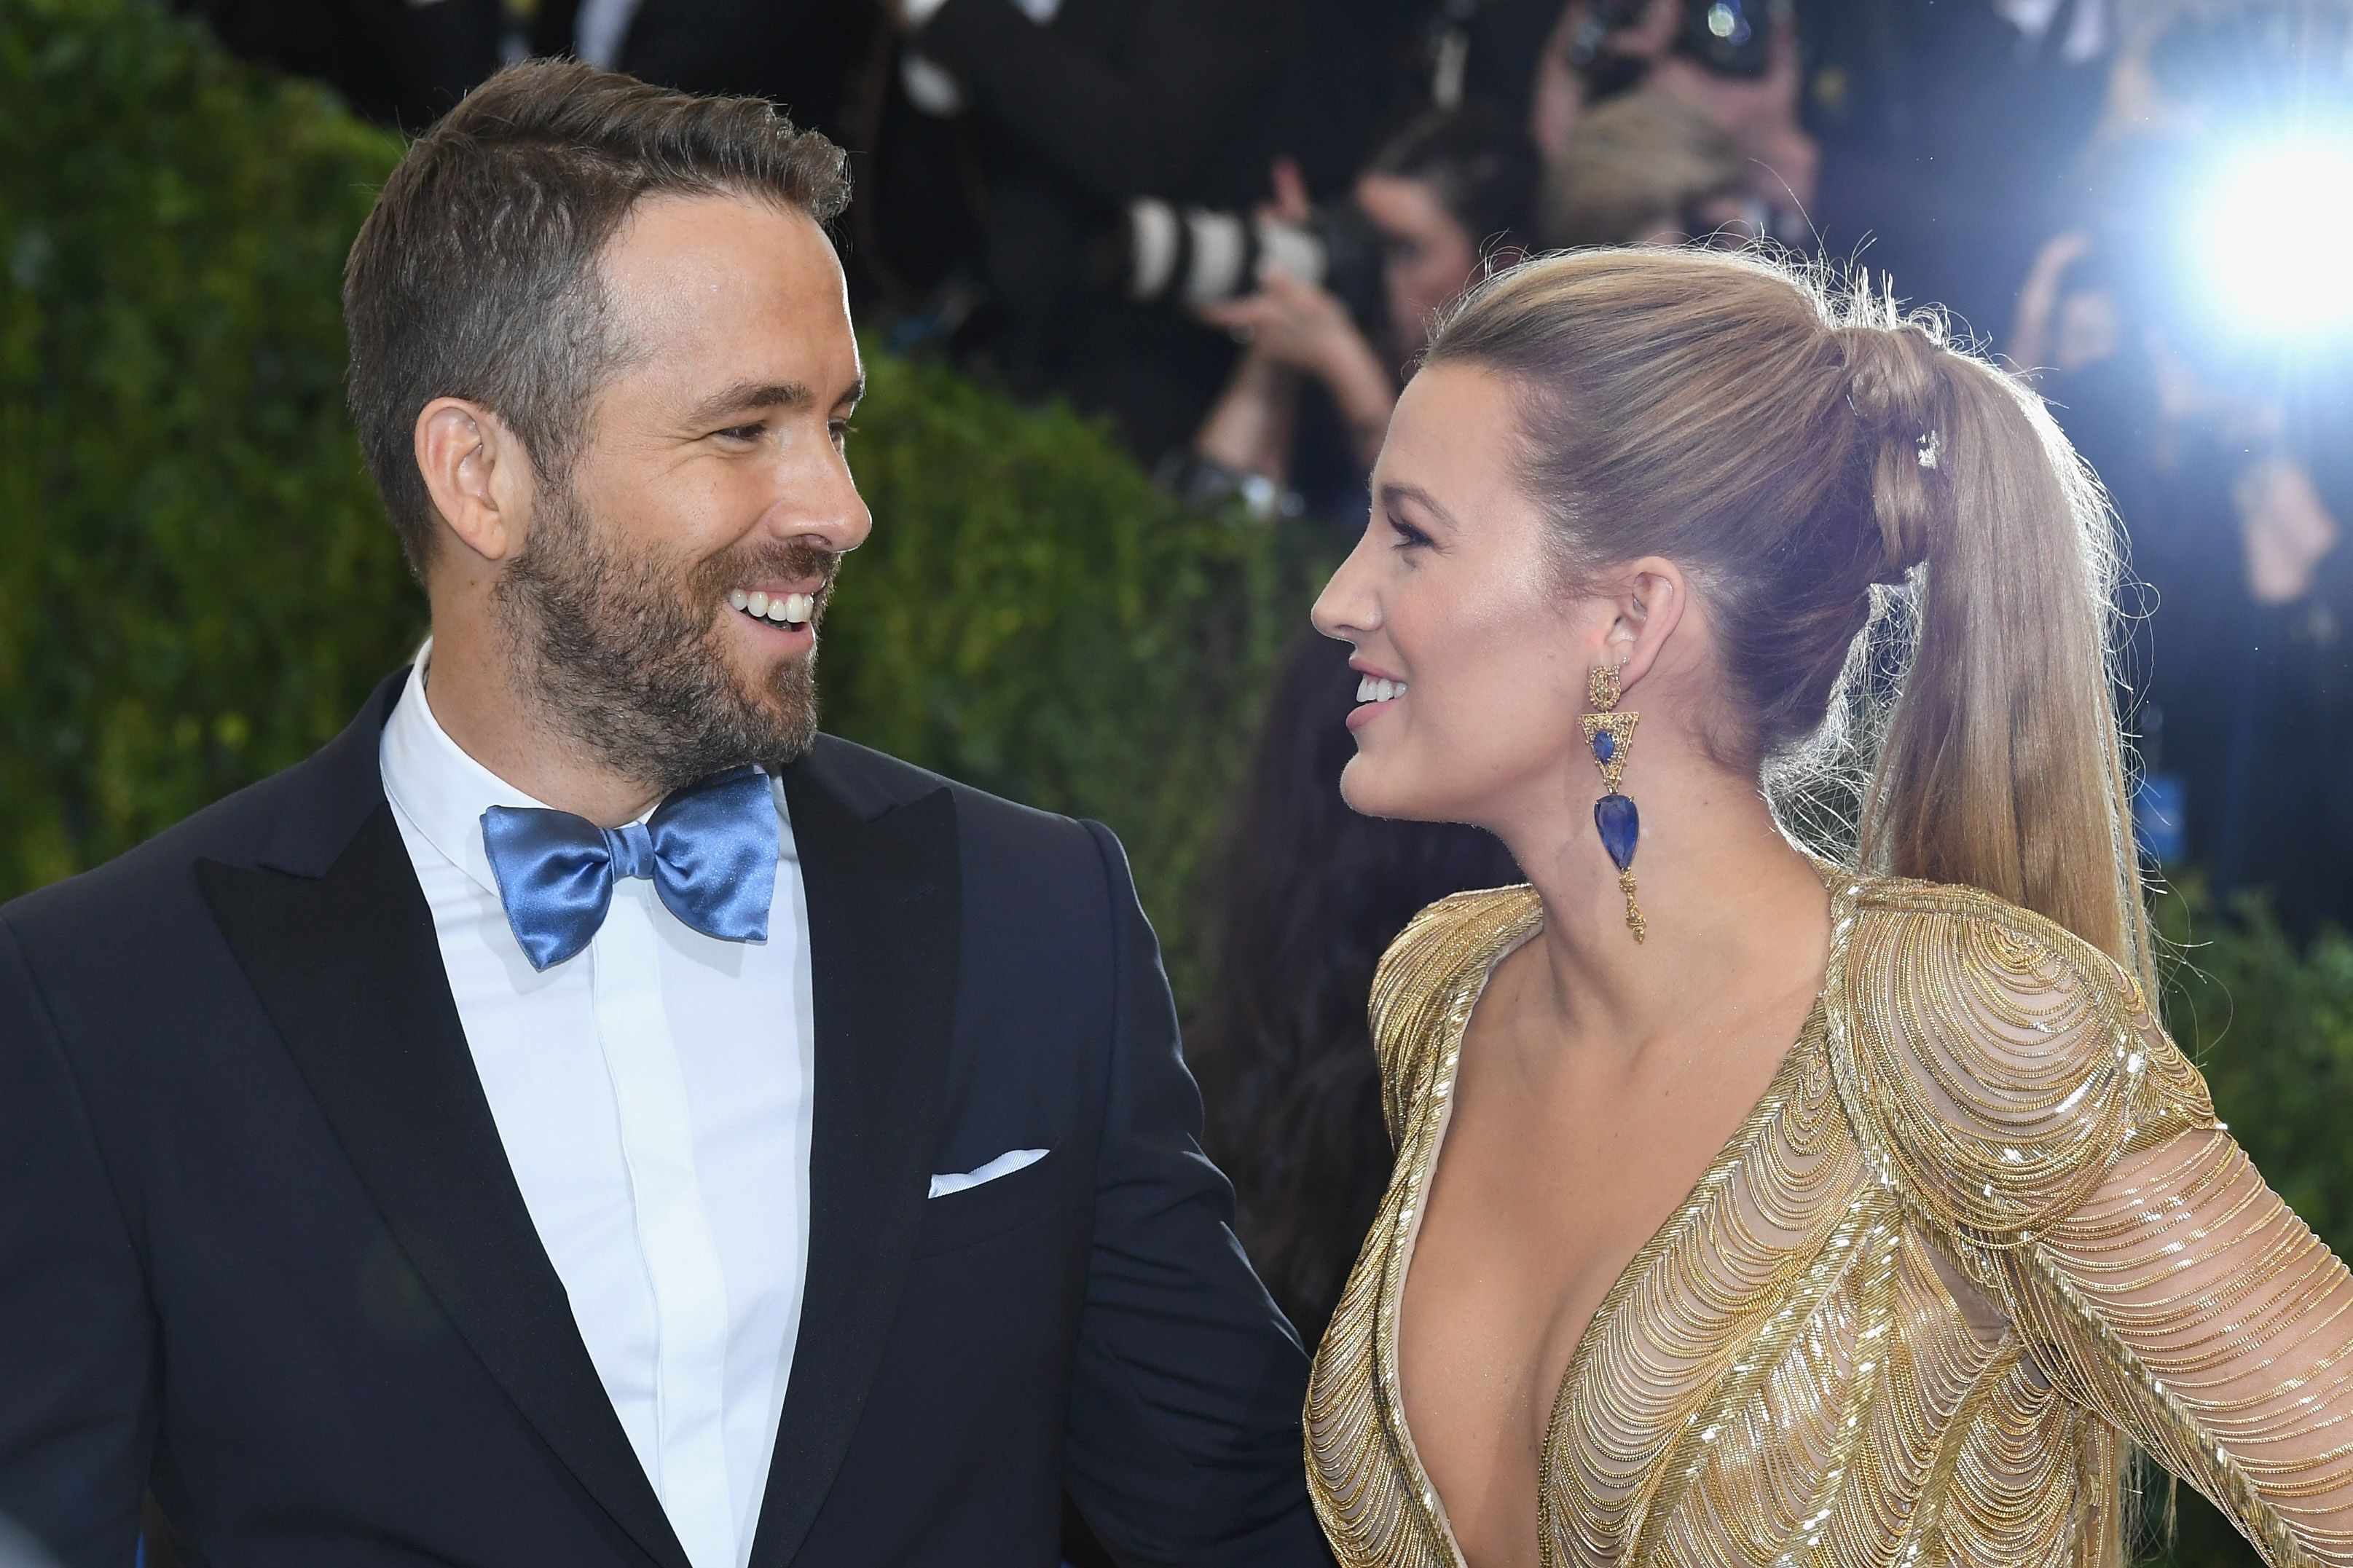 Blake Lively and Ryan Reynolds Roasted Each Other Again